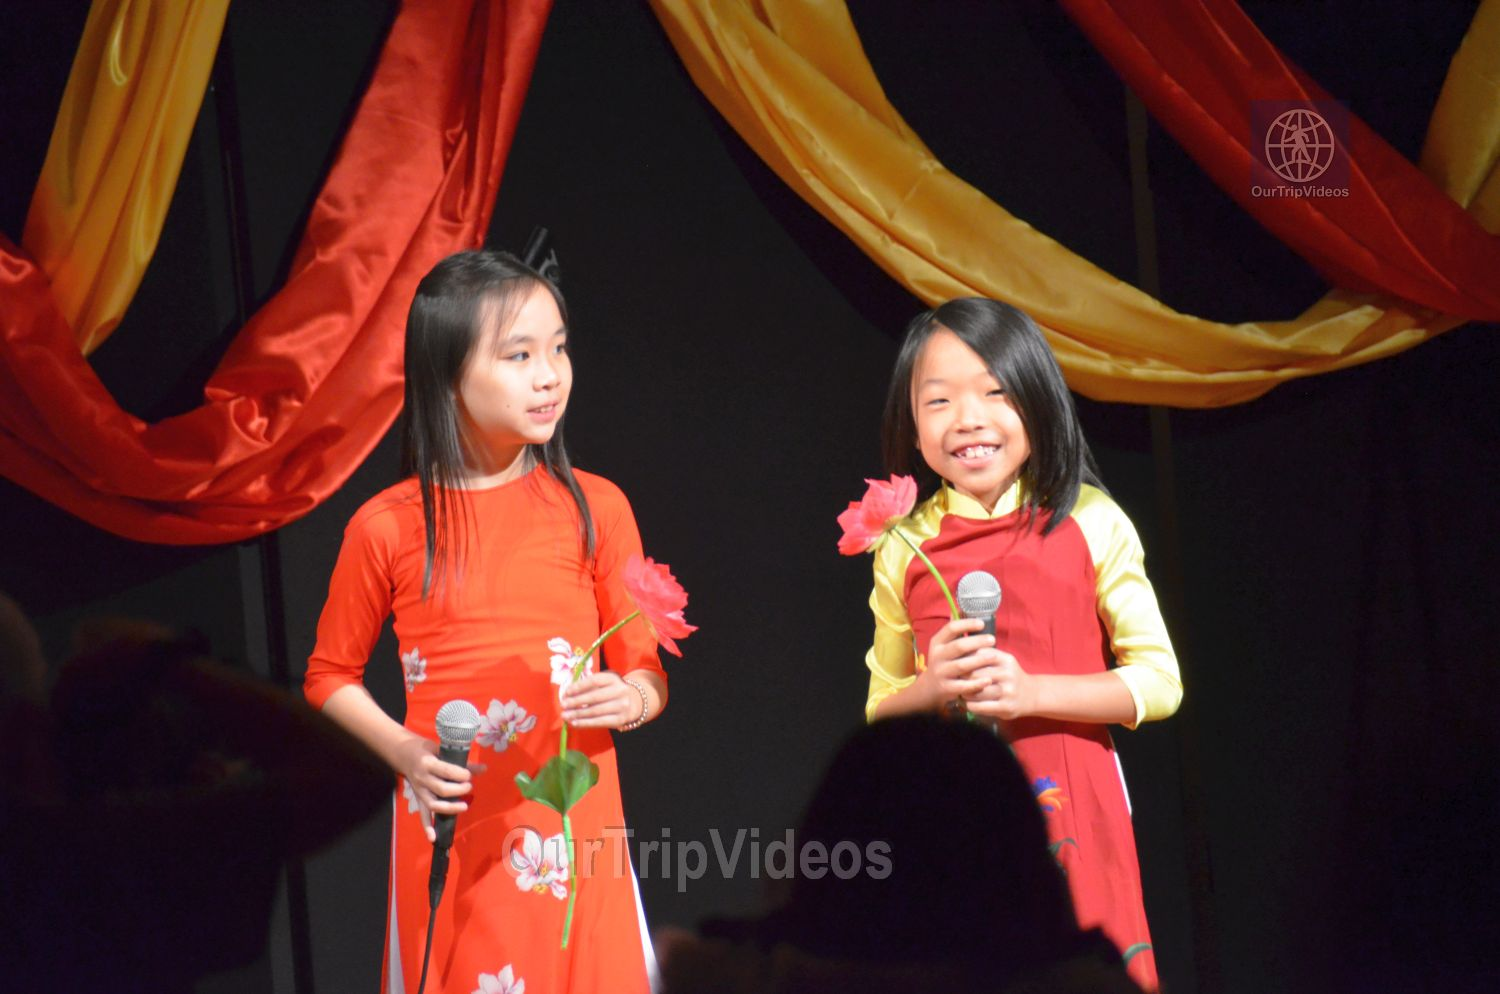 Chinese Lunar New Year Celebration, Milpitas, CA, USA - Picture 17 of 25